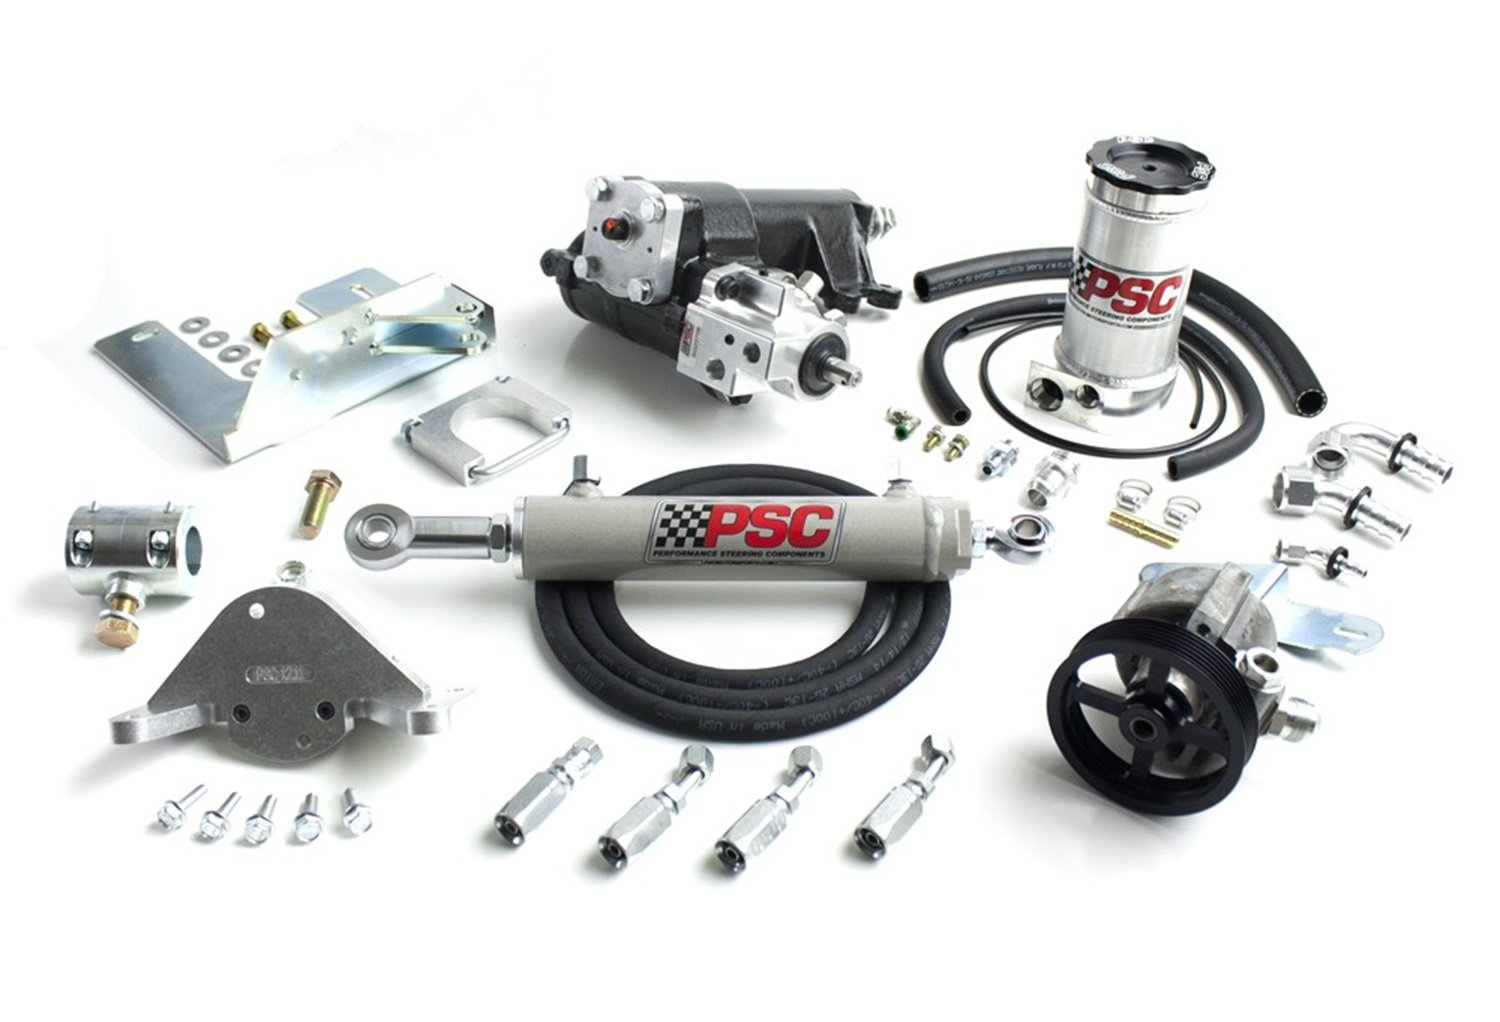 PSC Steering PSC-SK270 Cylinder Assist Kit